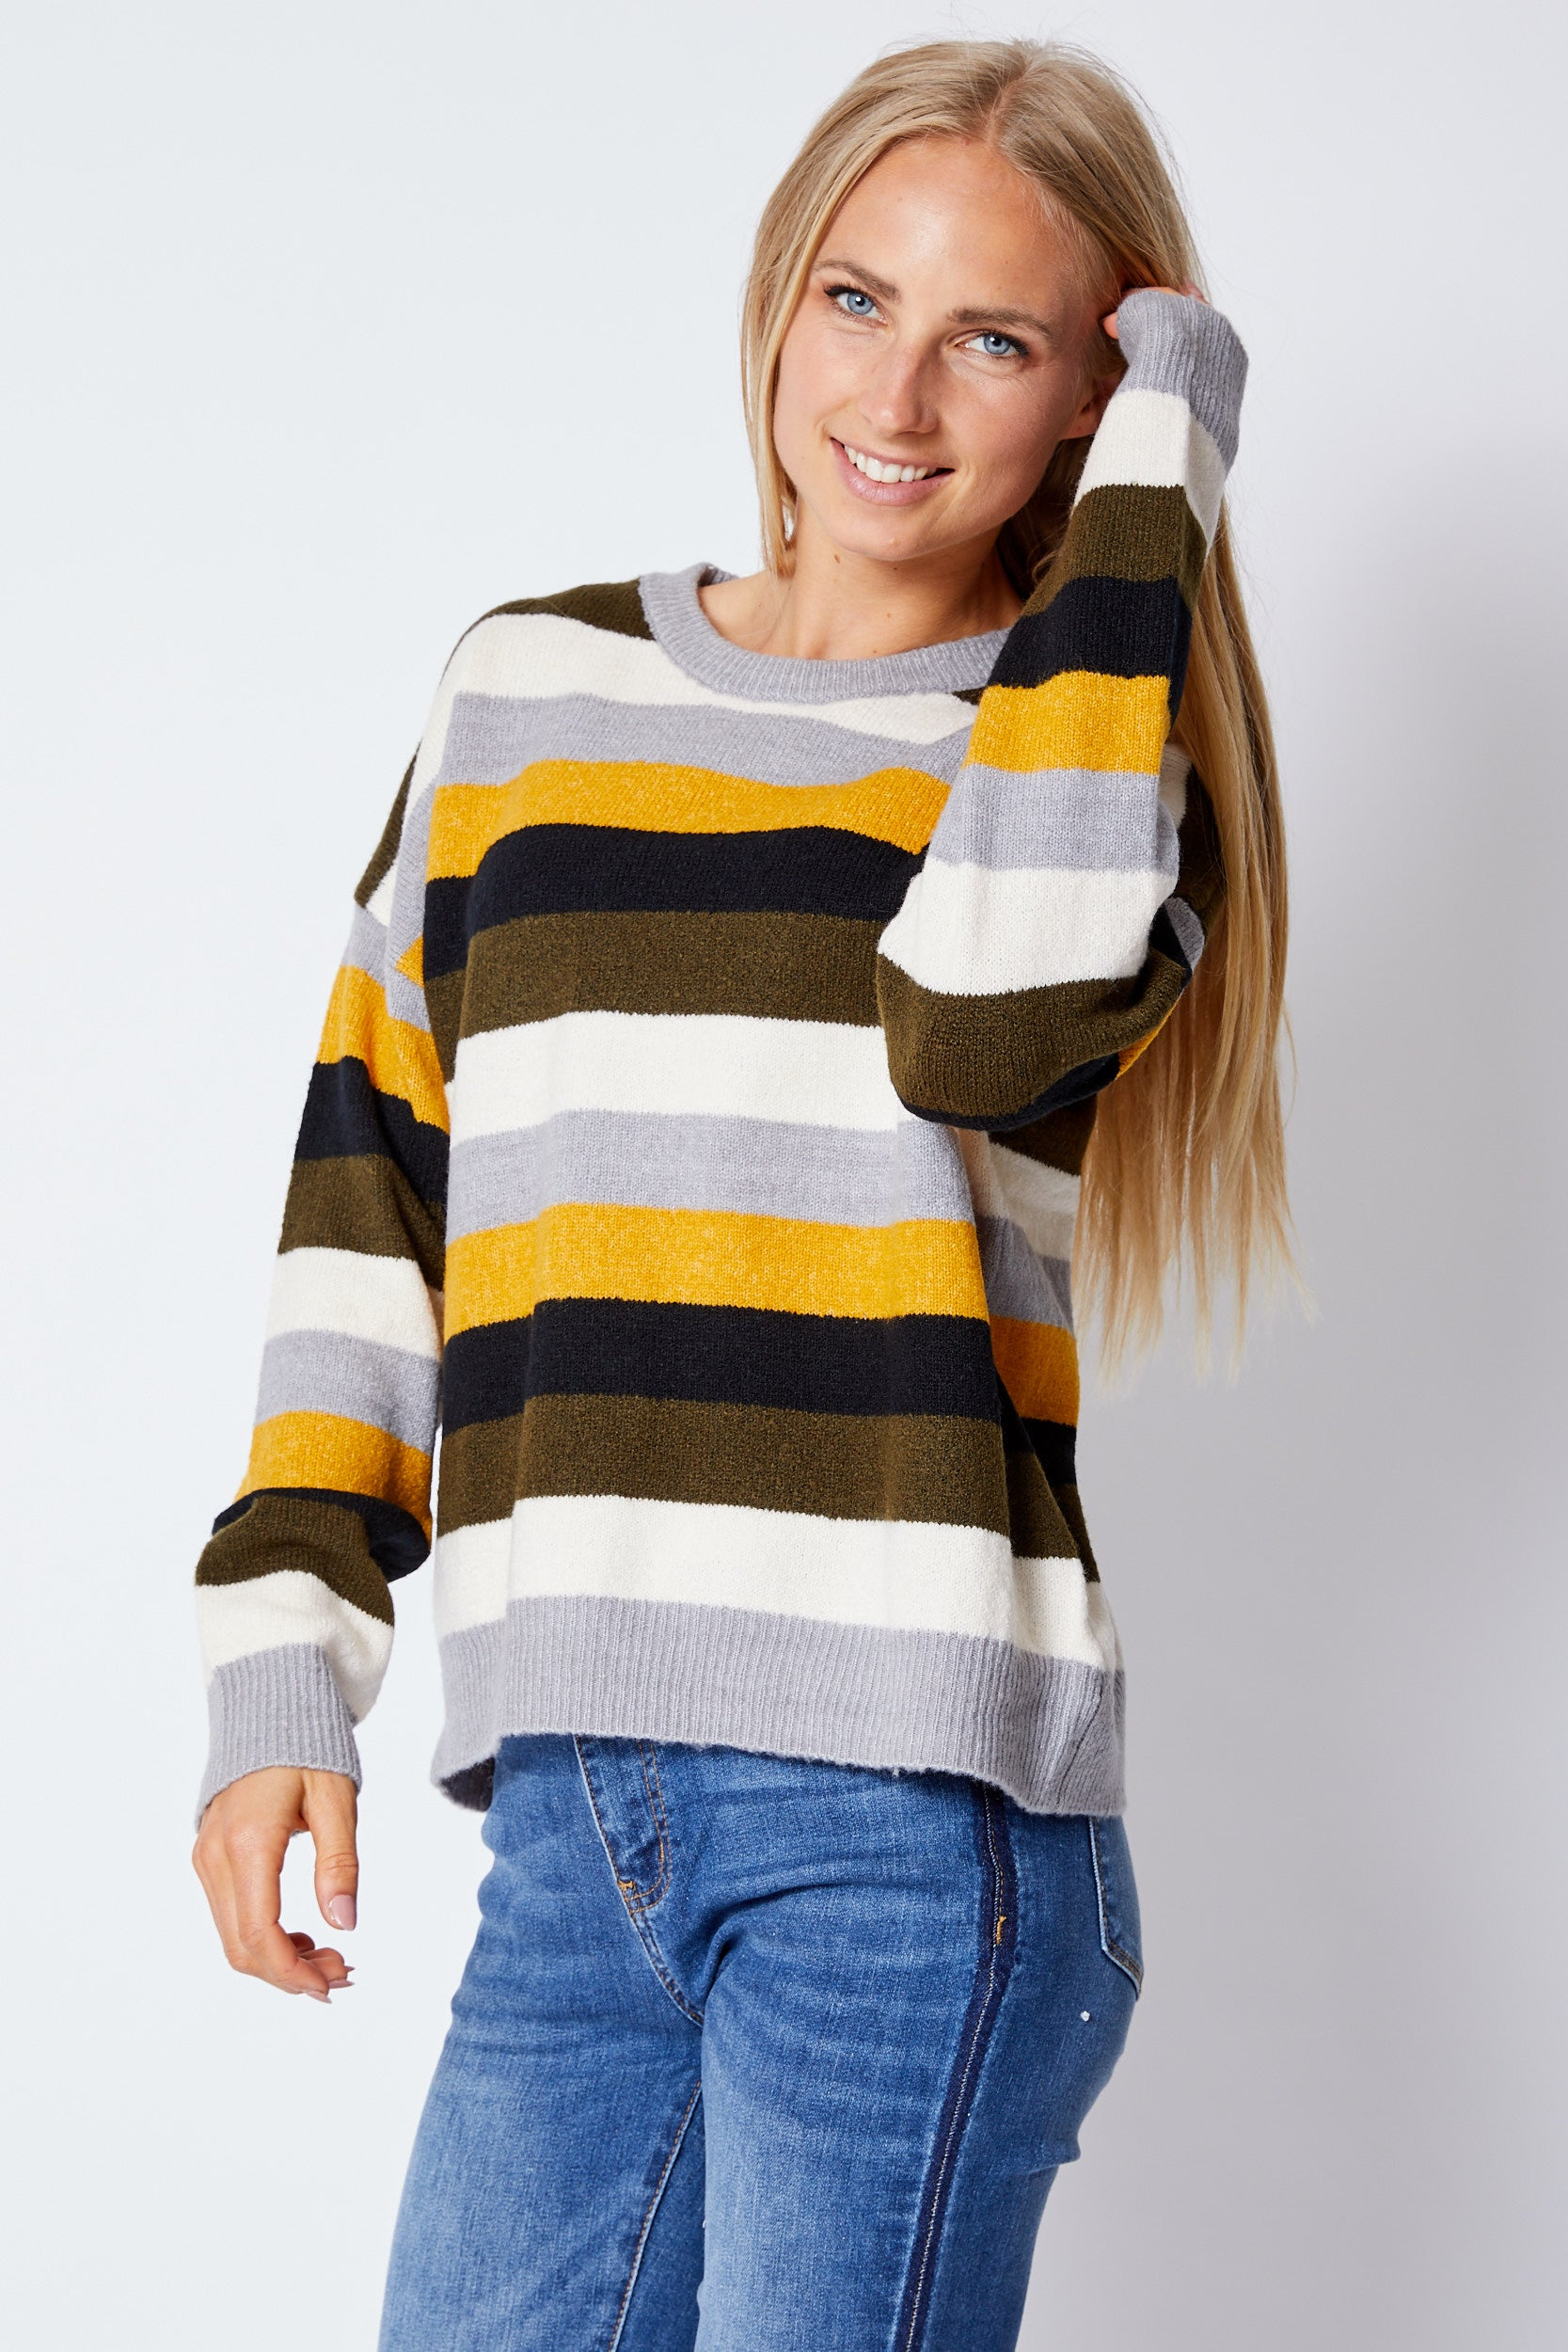 Olive Multi Striped Sweater - Jacqueline B Clothing